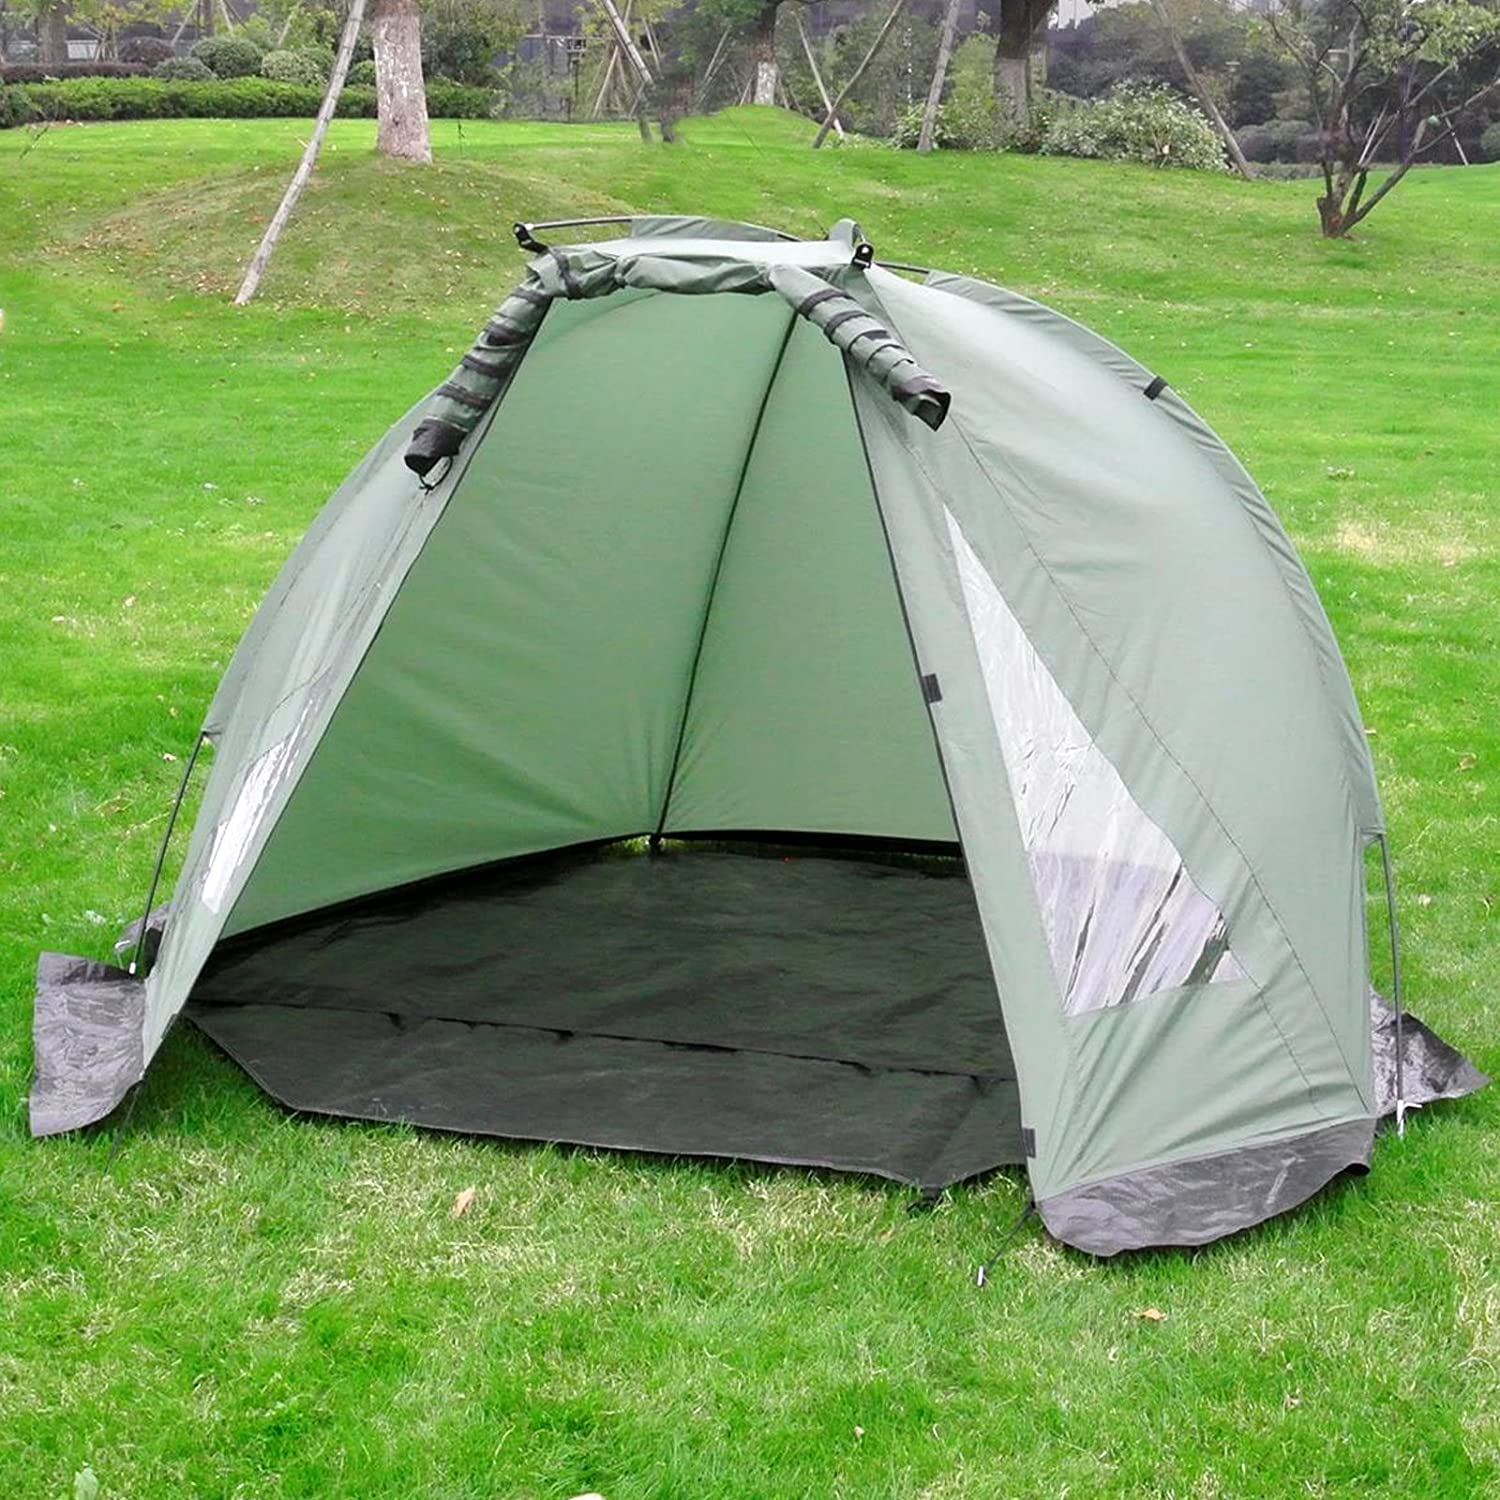 Carp Fishing Bivvy Tent Shelter   12 Man Quick Erect Lightweight Waterproof Day Shelter   Includes Groundsheet & Carry Bag   M&W